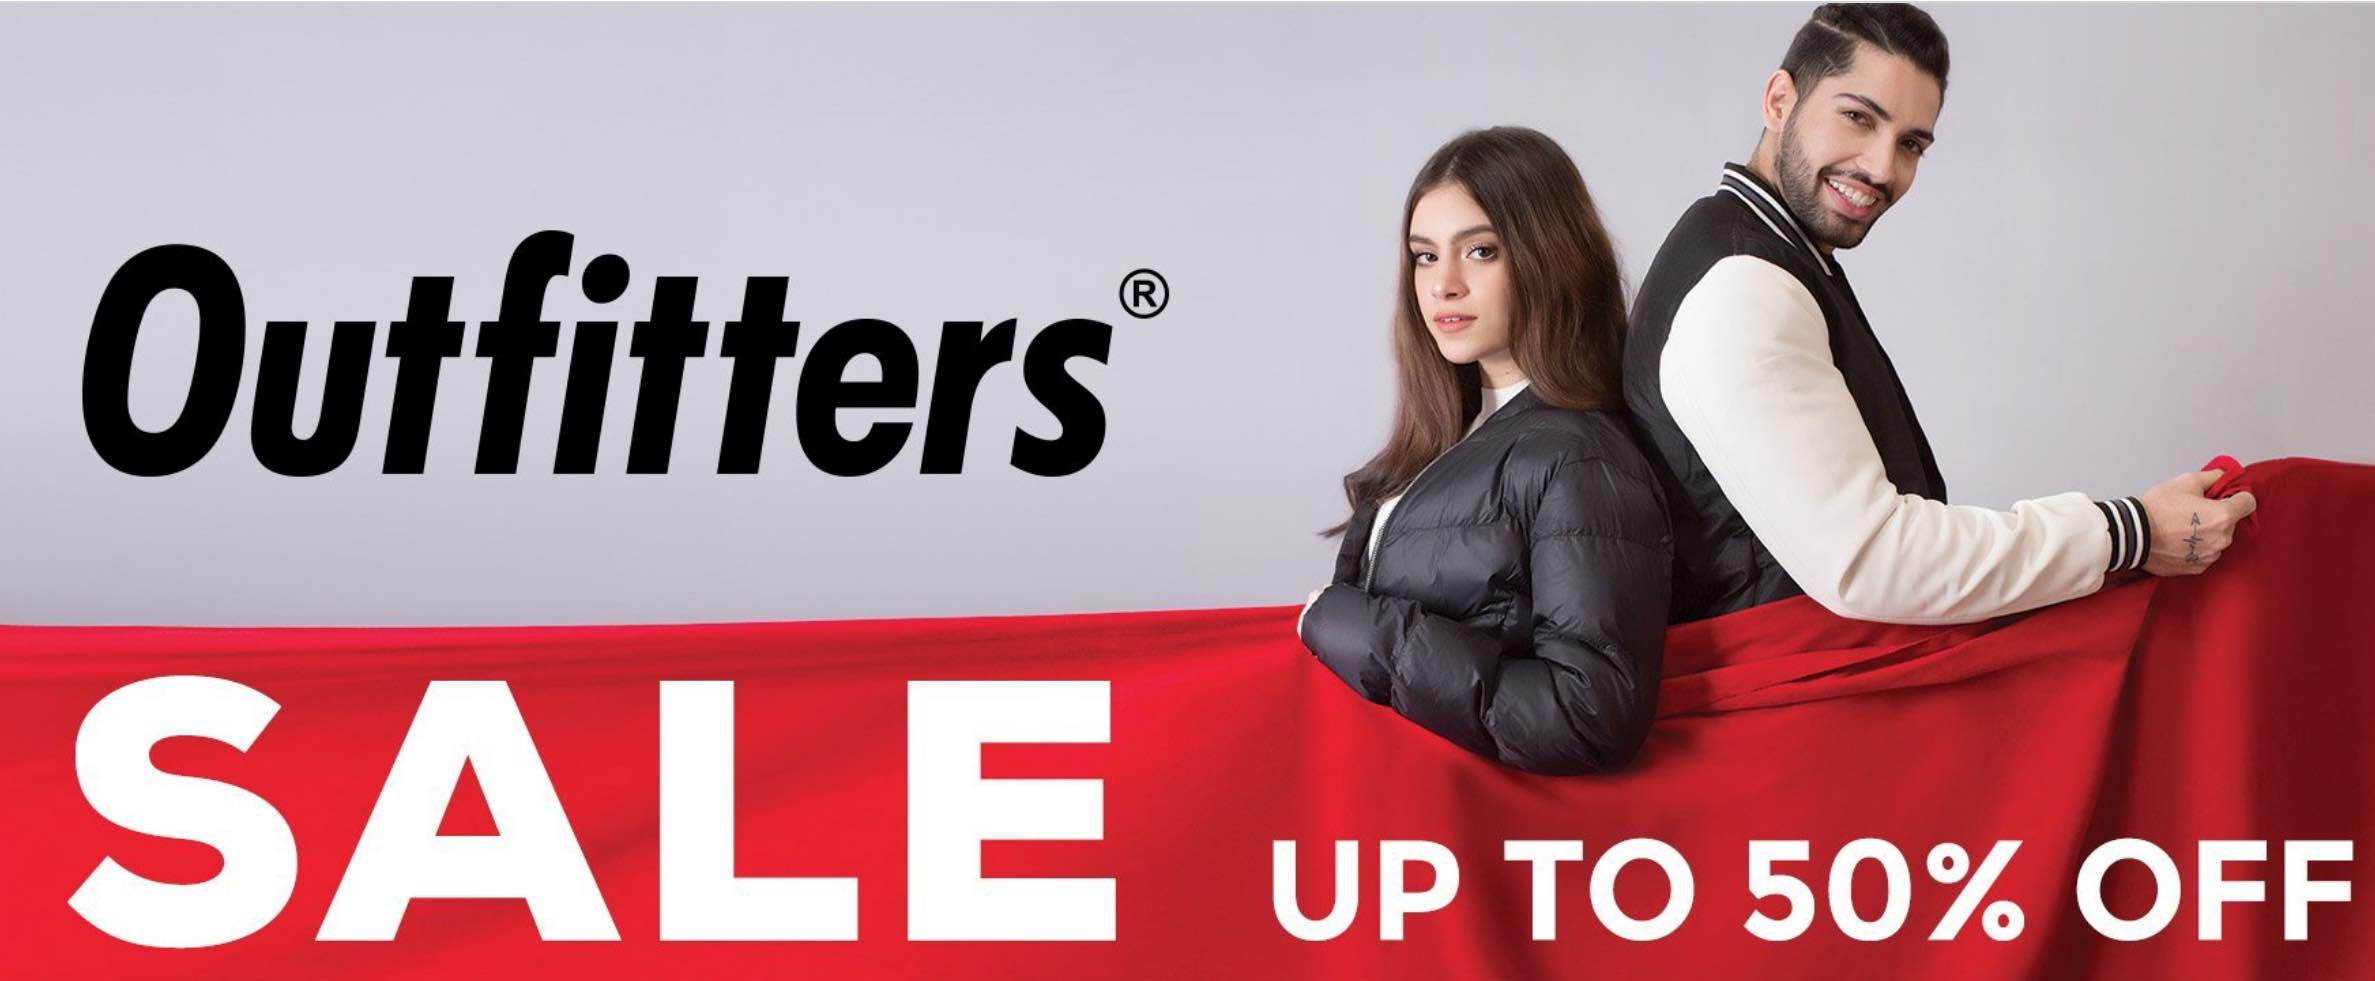 Outfiiters - Annual Winter Sale